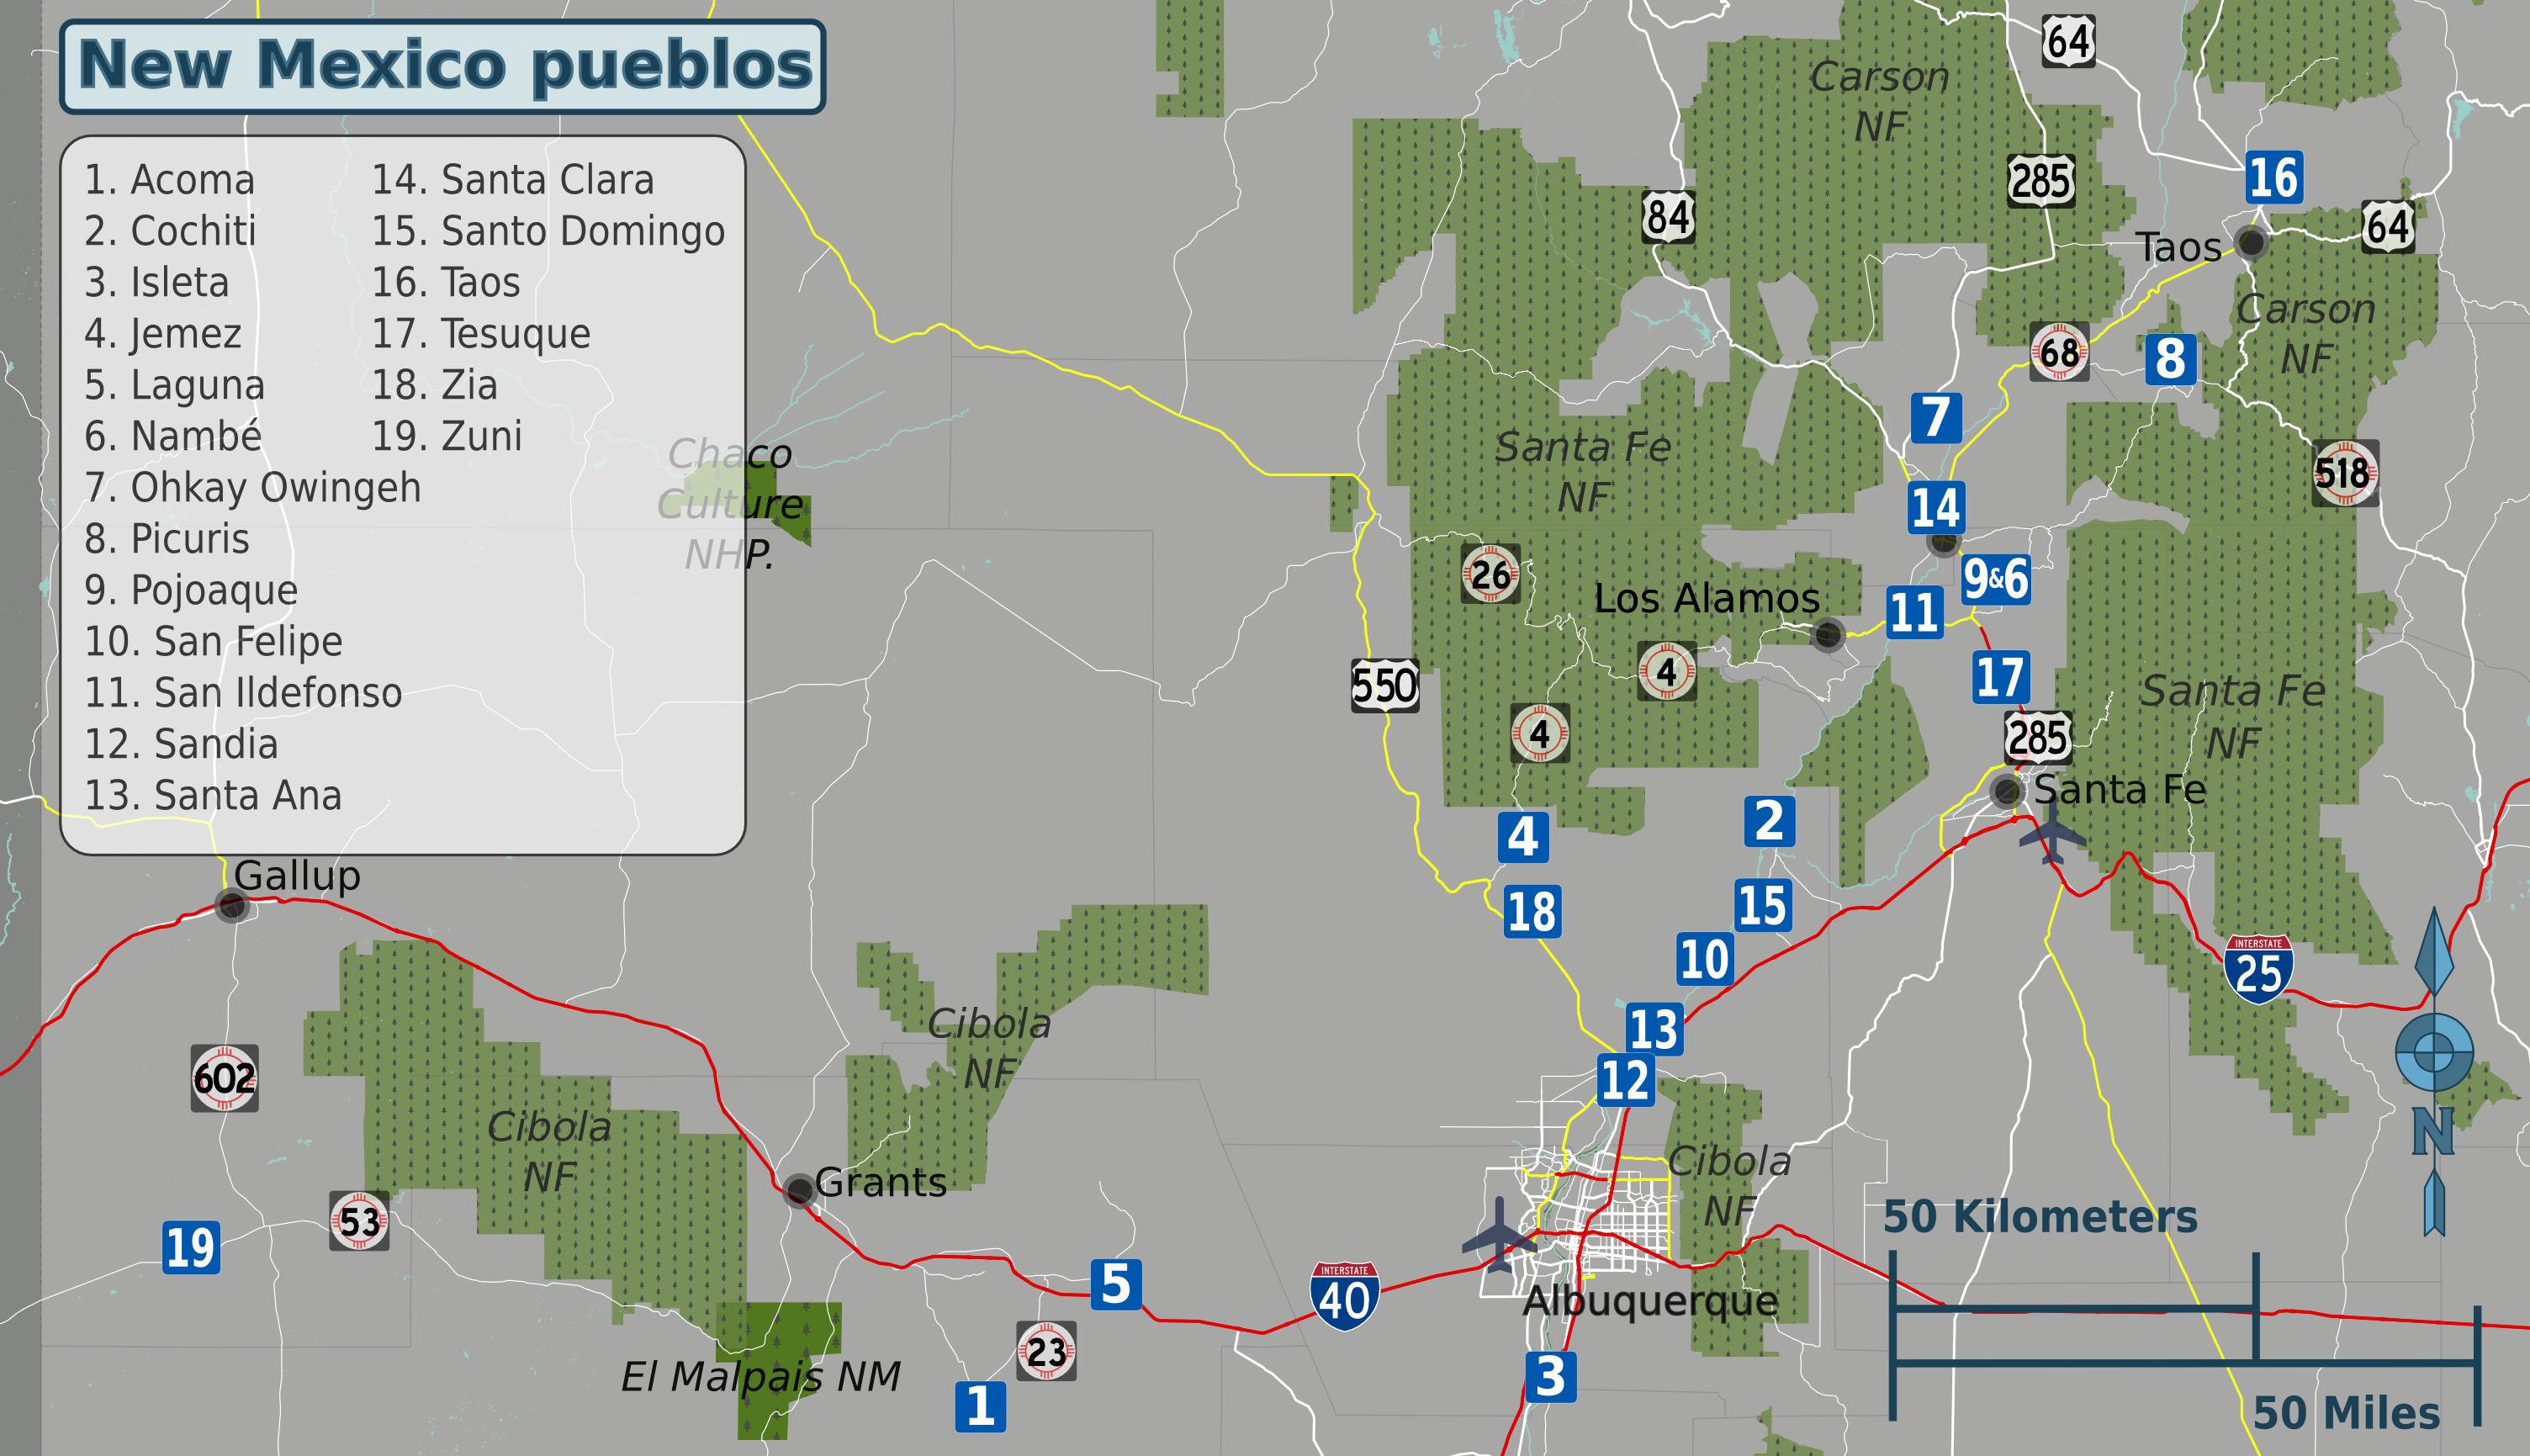 Pueblos New Mexico Map.File New Mexico Pueblos Map Png Wikimedia Commons